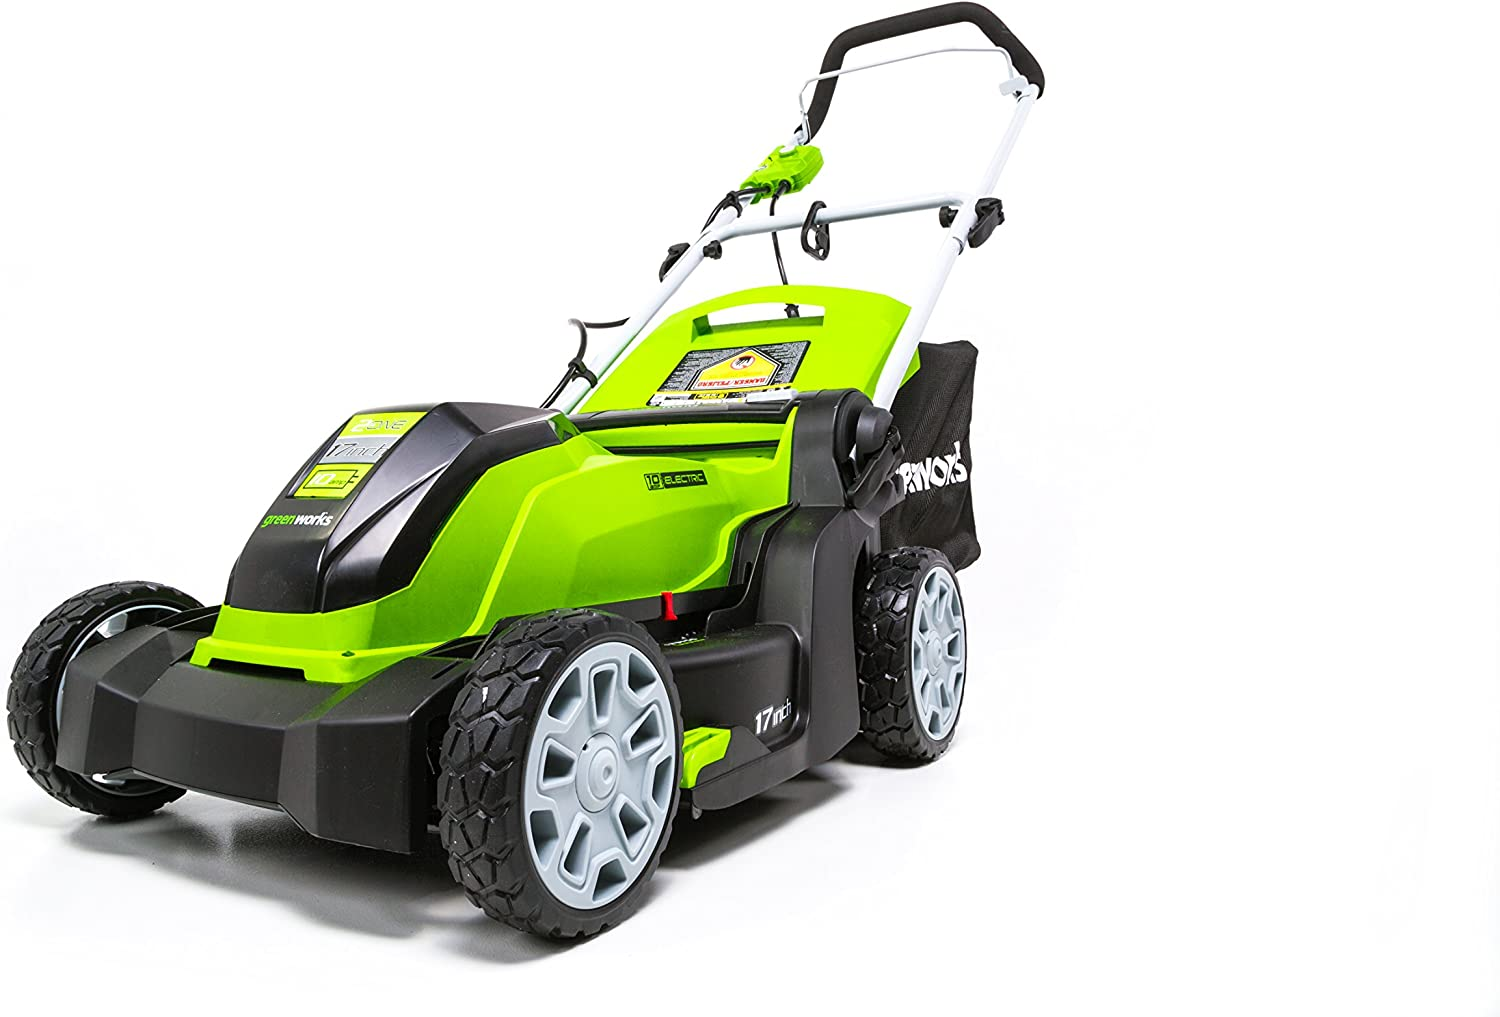 Greenworks G-MAX 10 Amp 17'' Corded Electric Mower